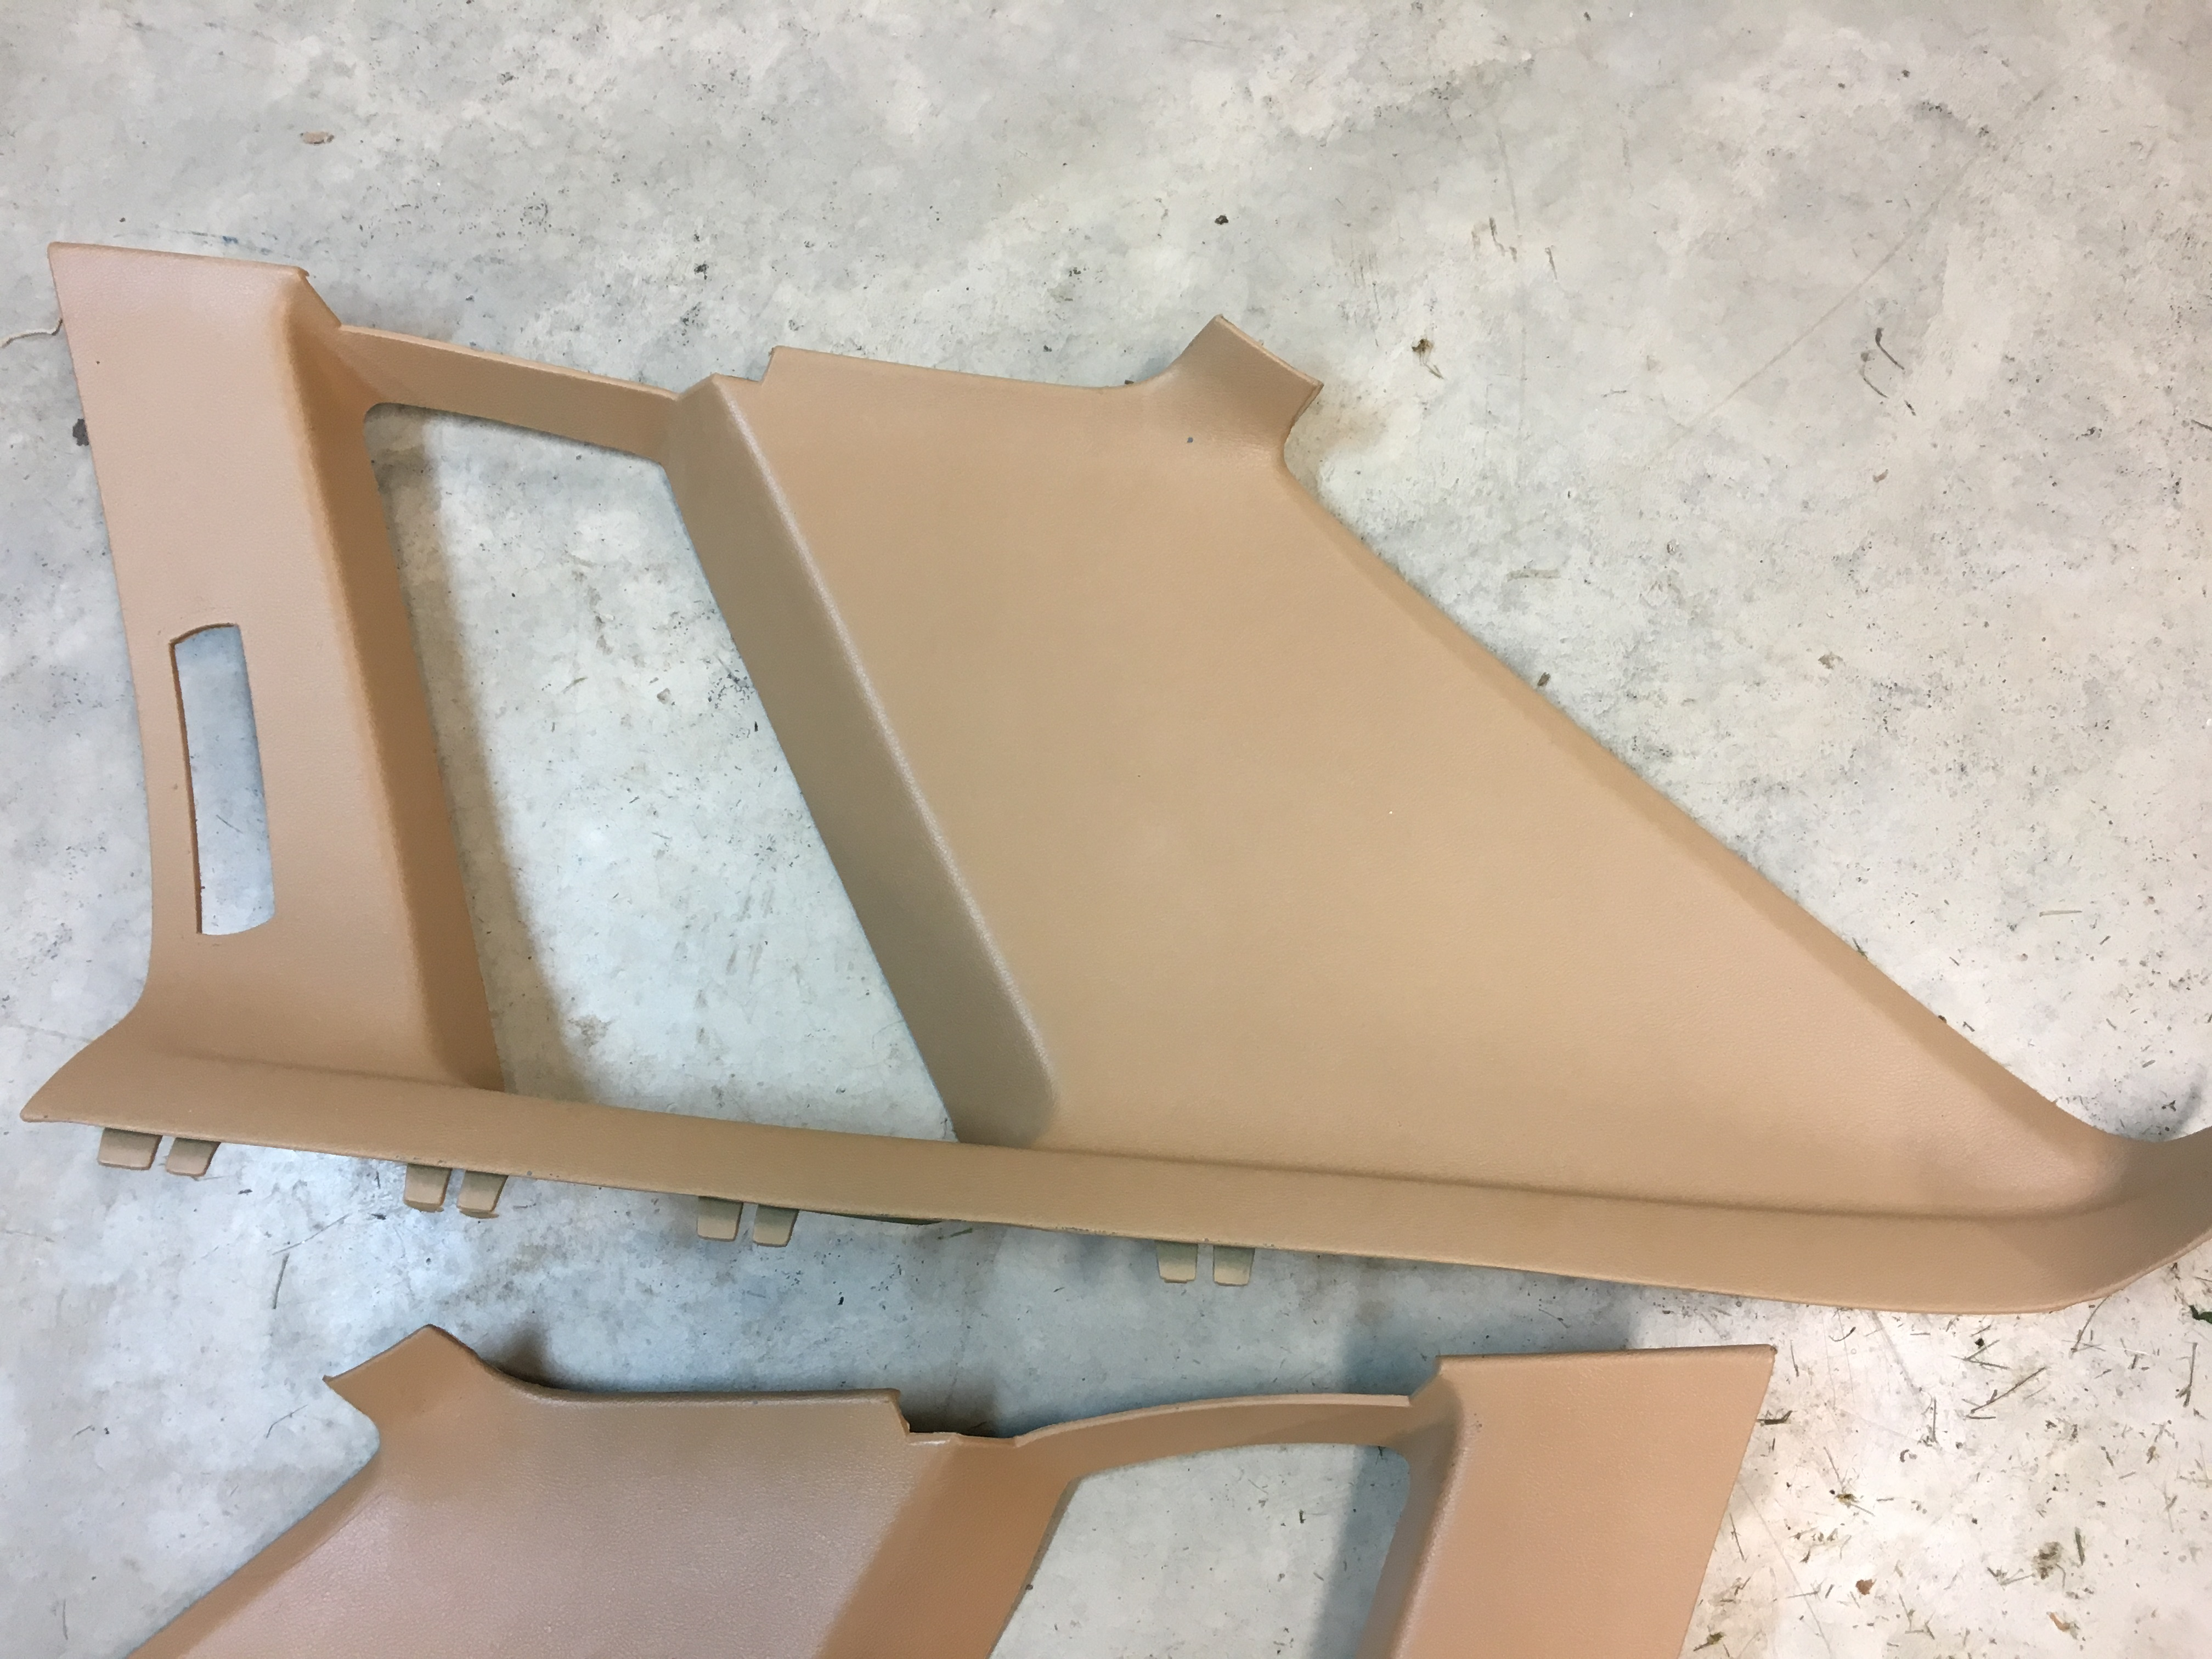 73-77 GM A body buckskin sail panels - excellent condition  Img_1310